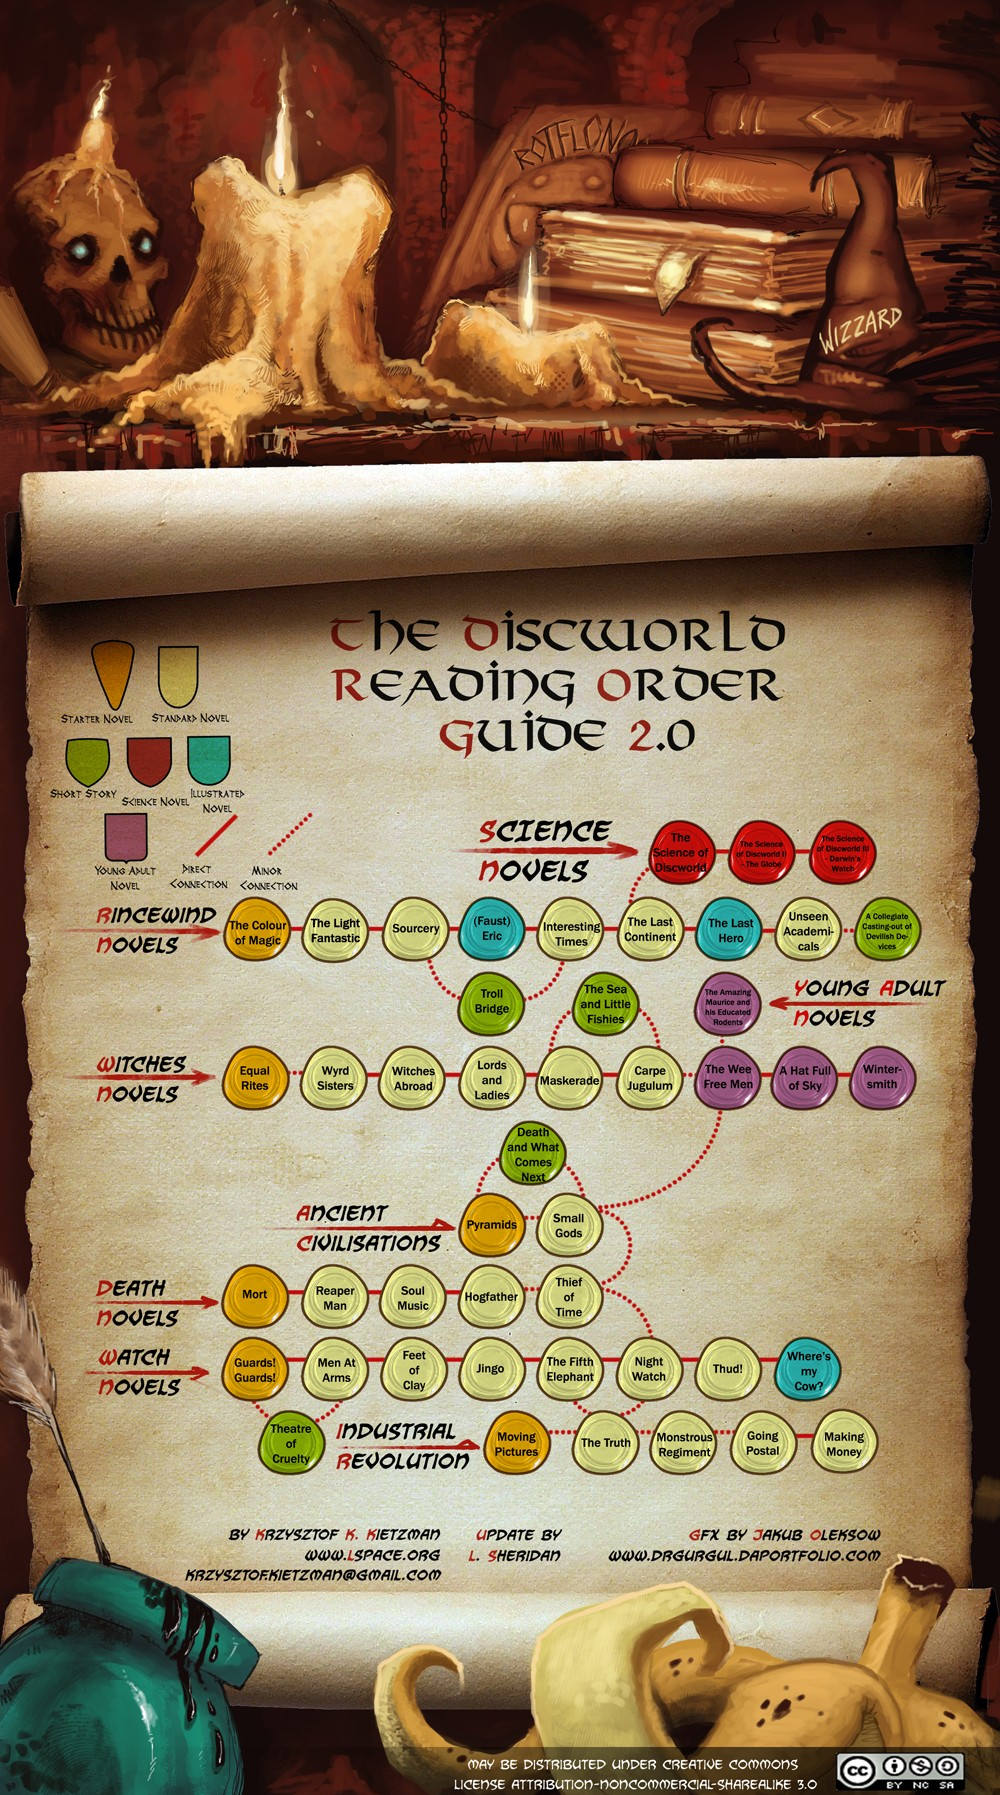 Discworld Reading Order Guide 2.0